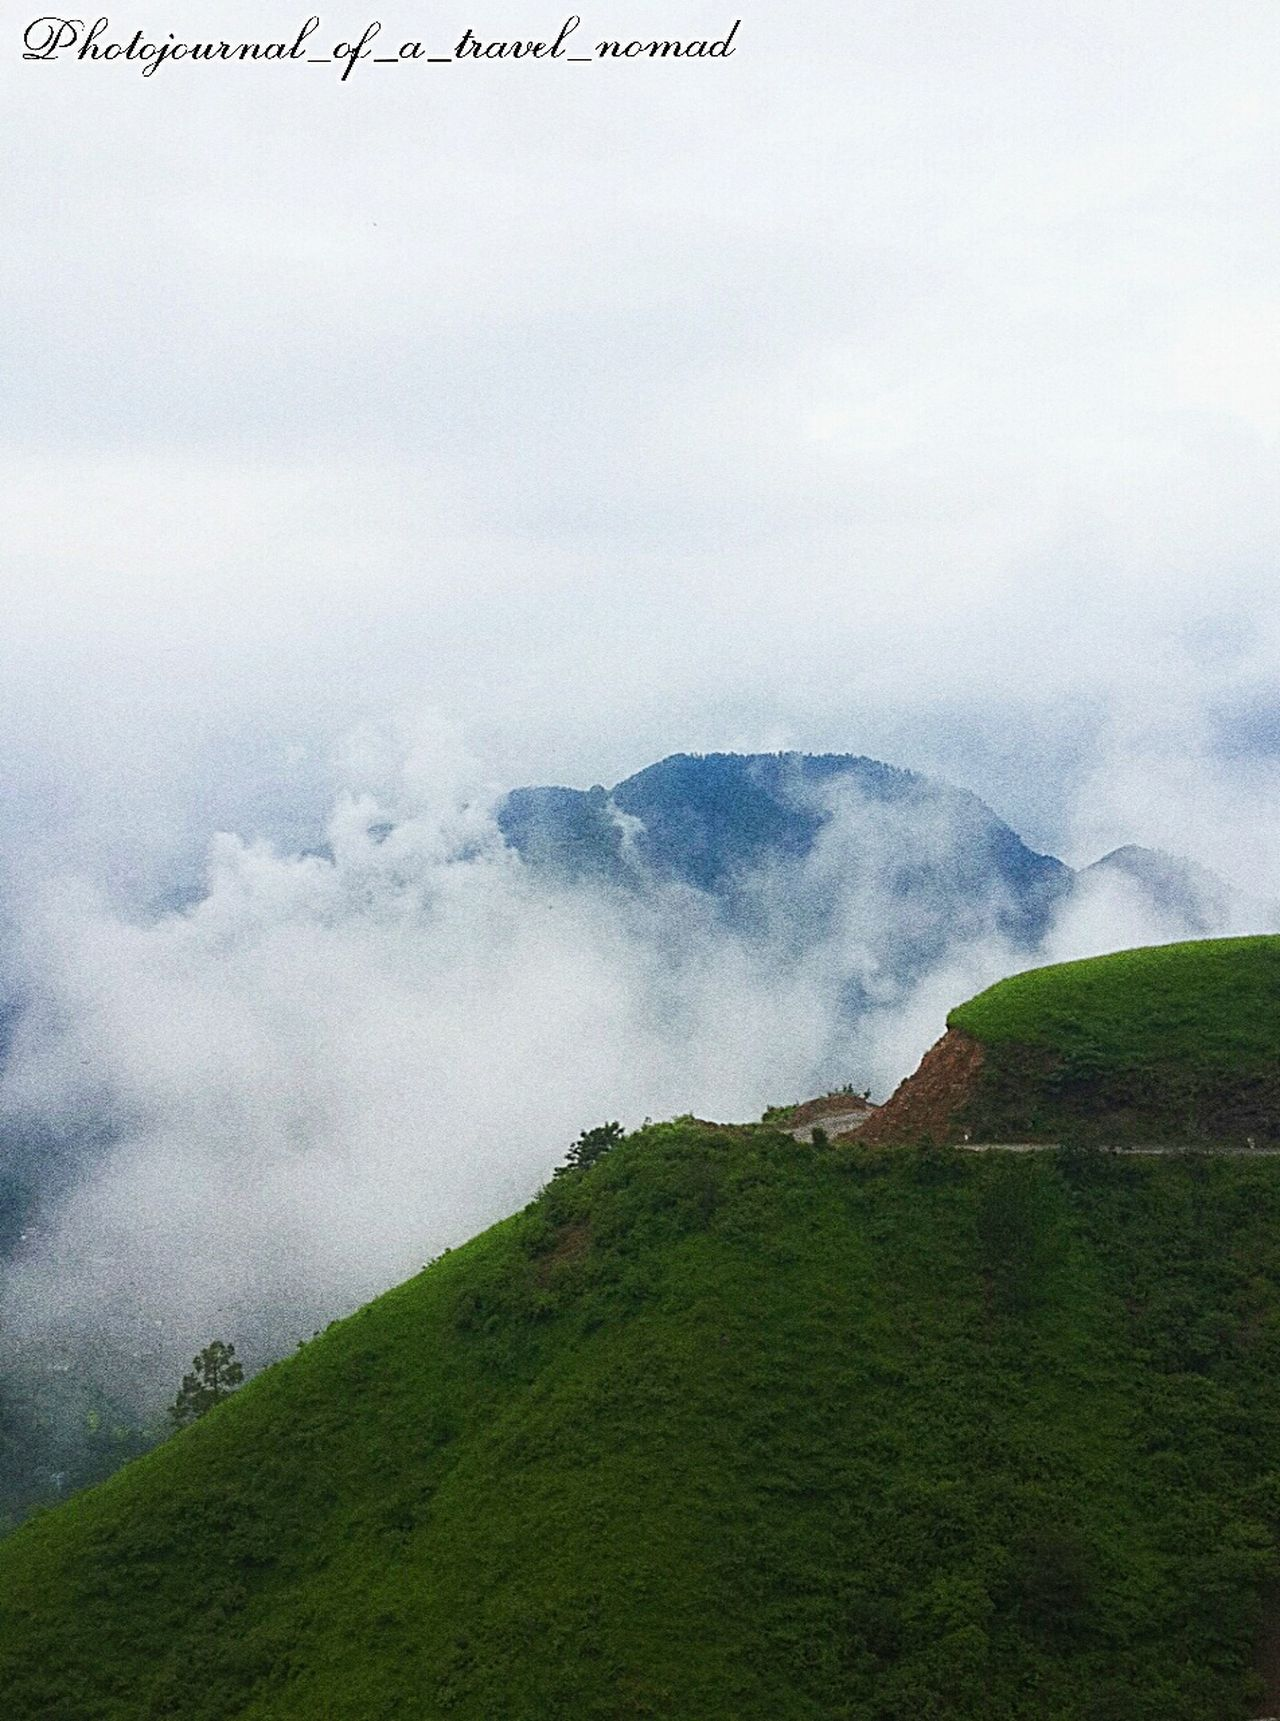 Clouds and peaks playing hide and seek ... Nature's beauty ... Eyeem India Photojournal_of_a_travel_nomad Traveller_india White Clouds The Traveler - 2015 EyeEm Awards EyeEm Best Shots - Landscape Green Peaks Living The Dream Mountains And Sky Natureshiddenbeauty